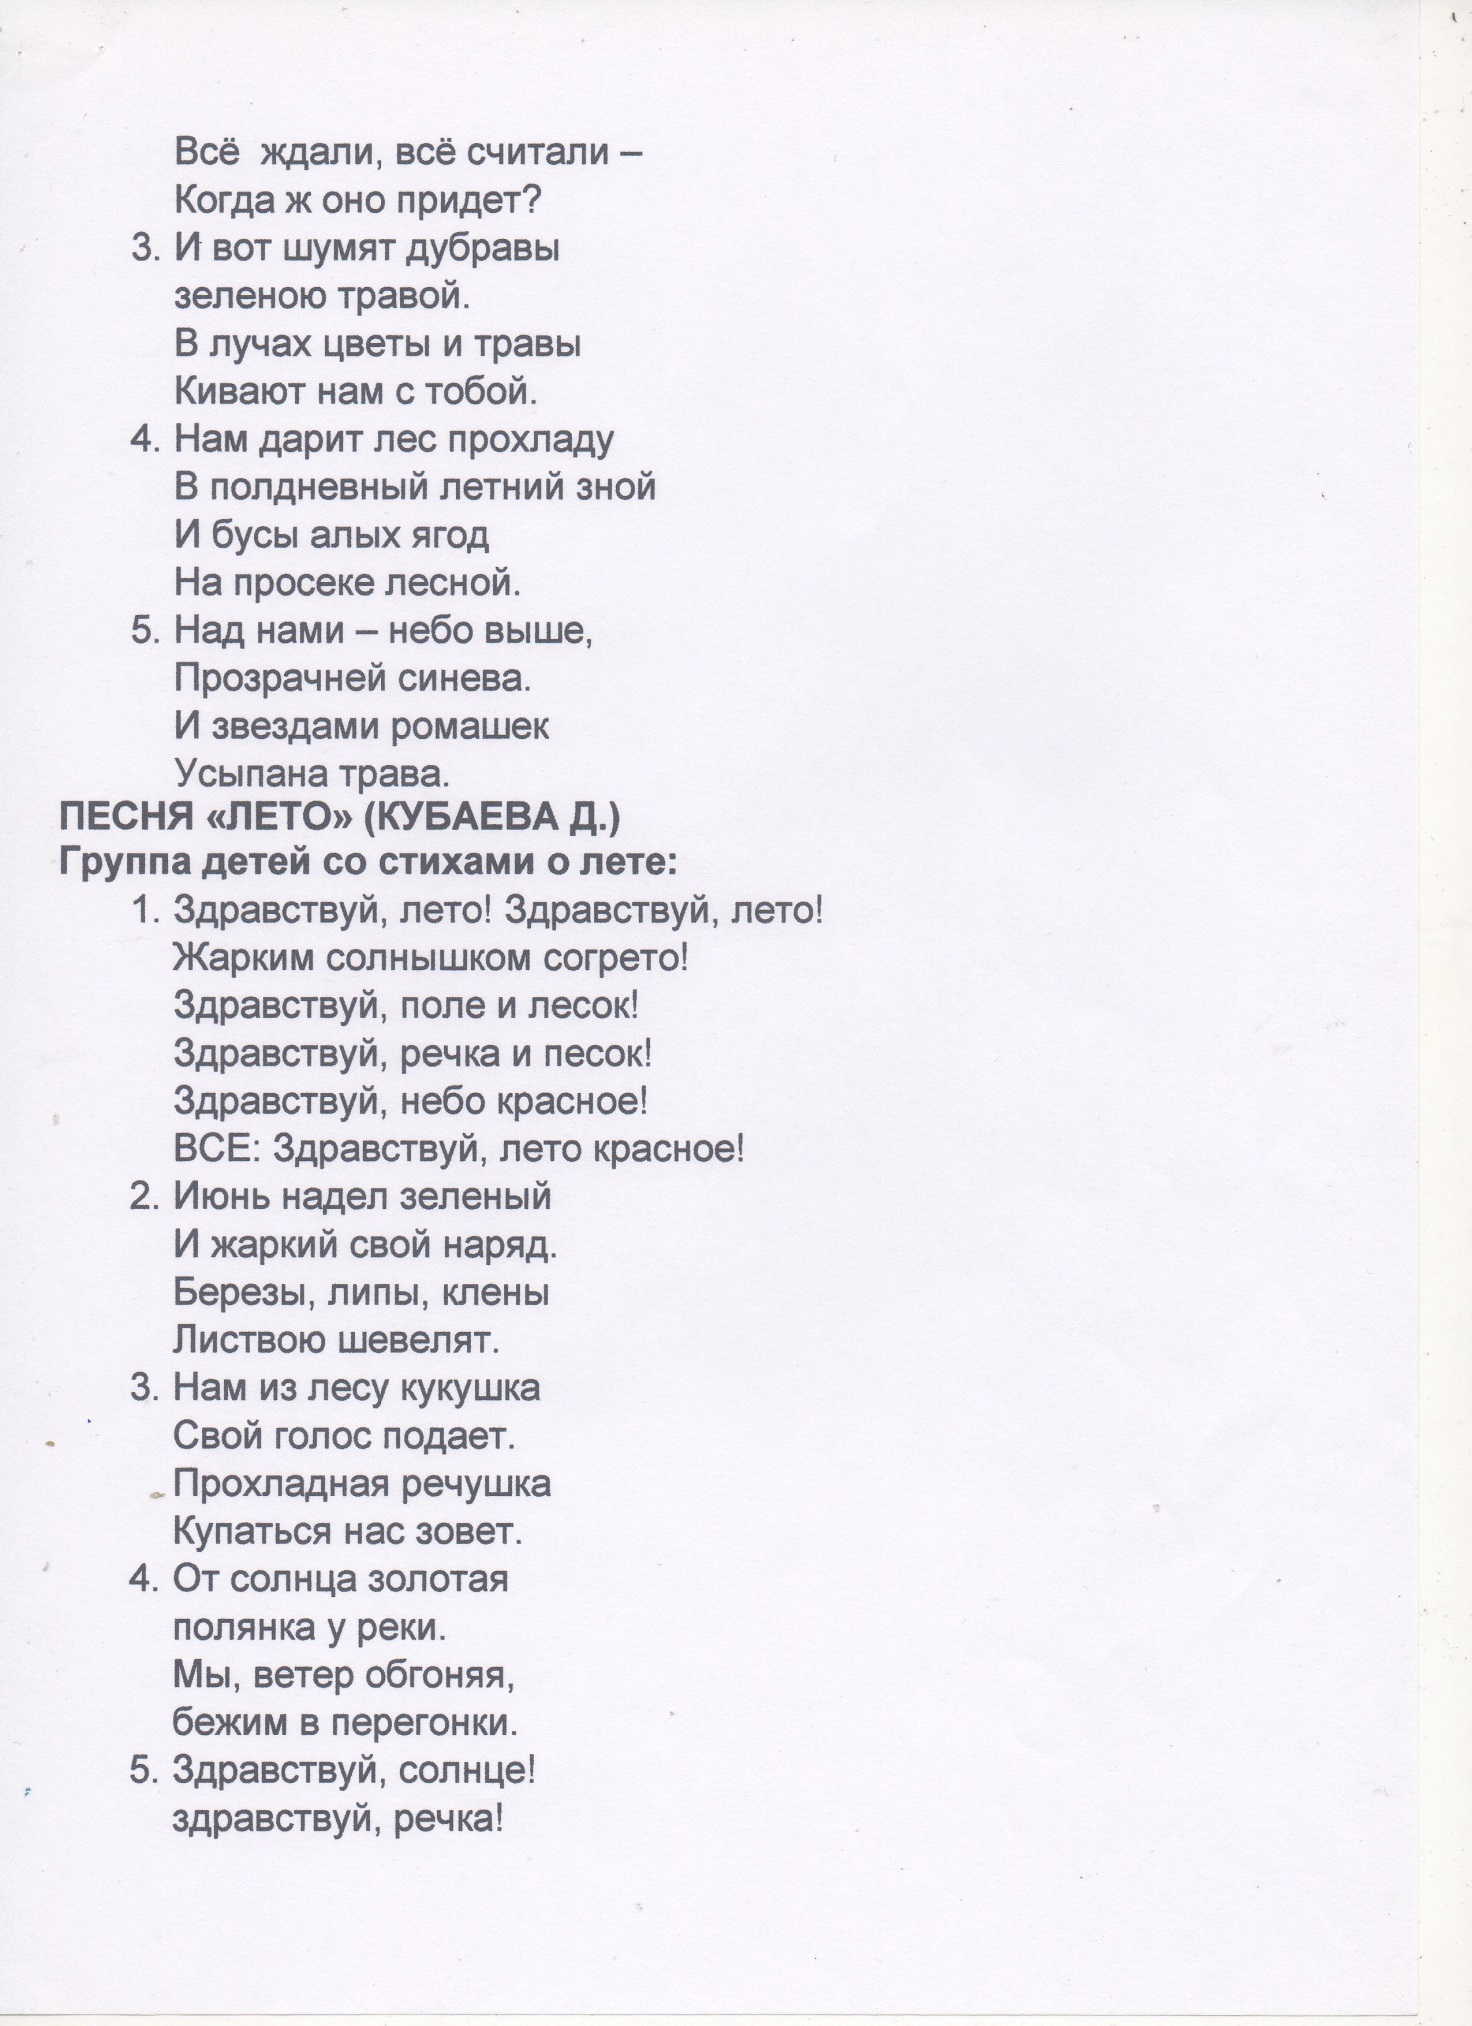 C:\Users\user\Pictures\скан\2.jpg